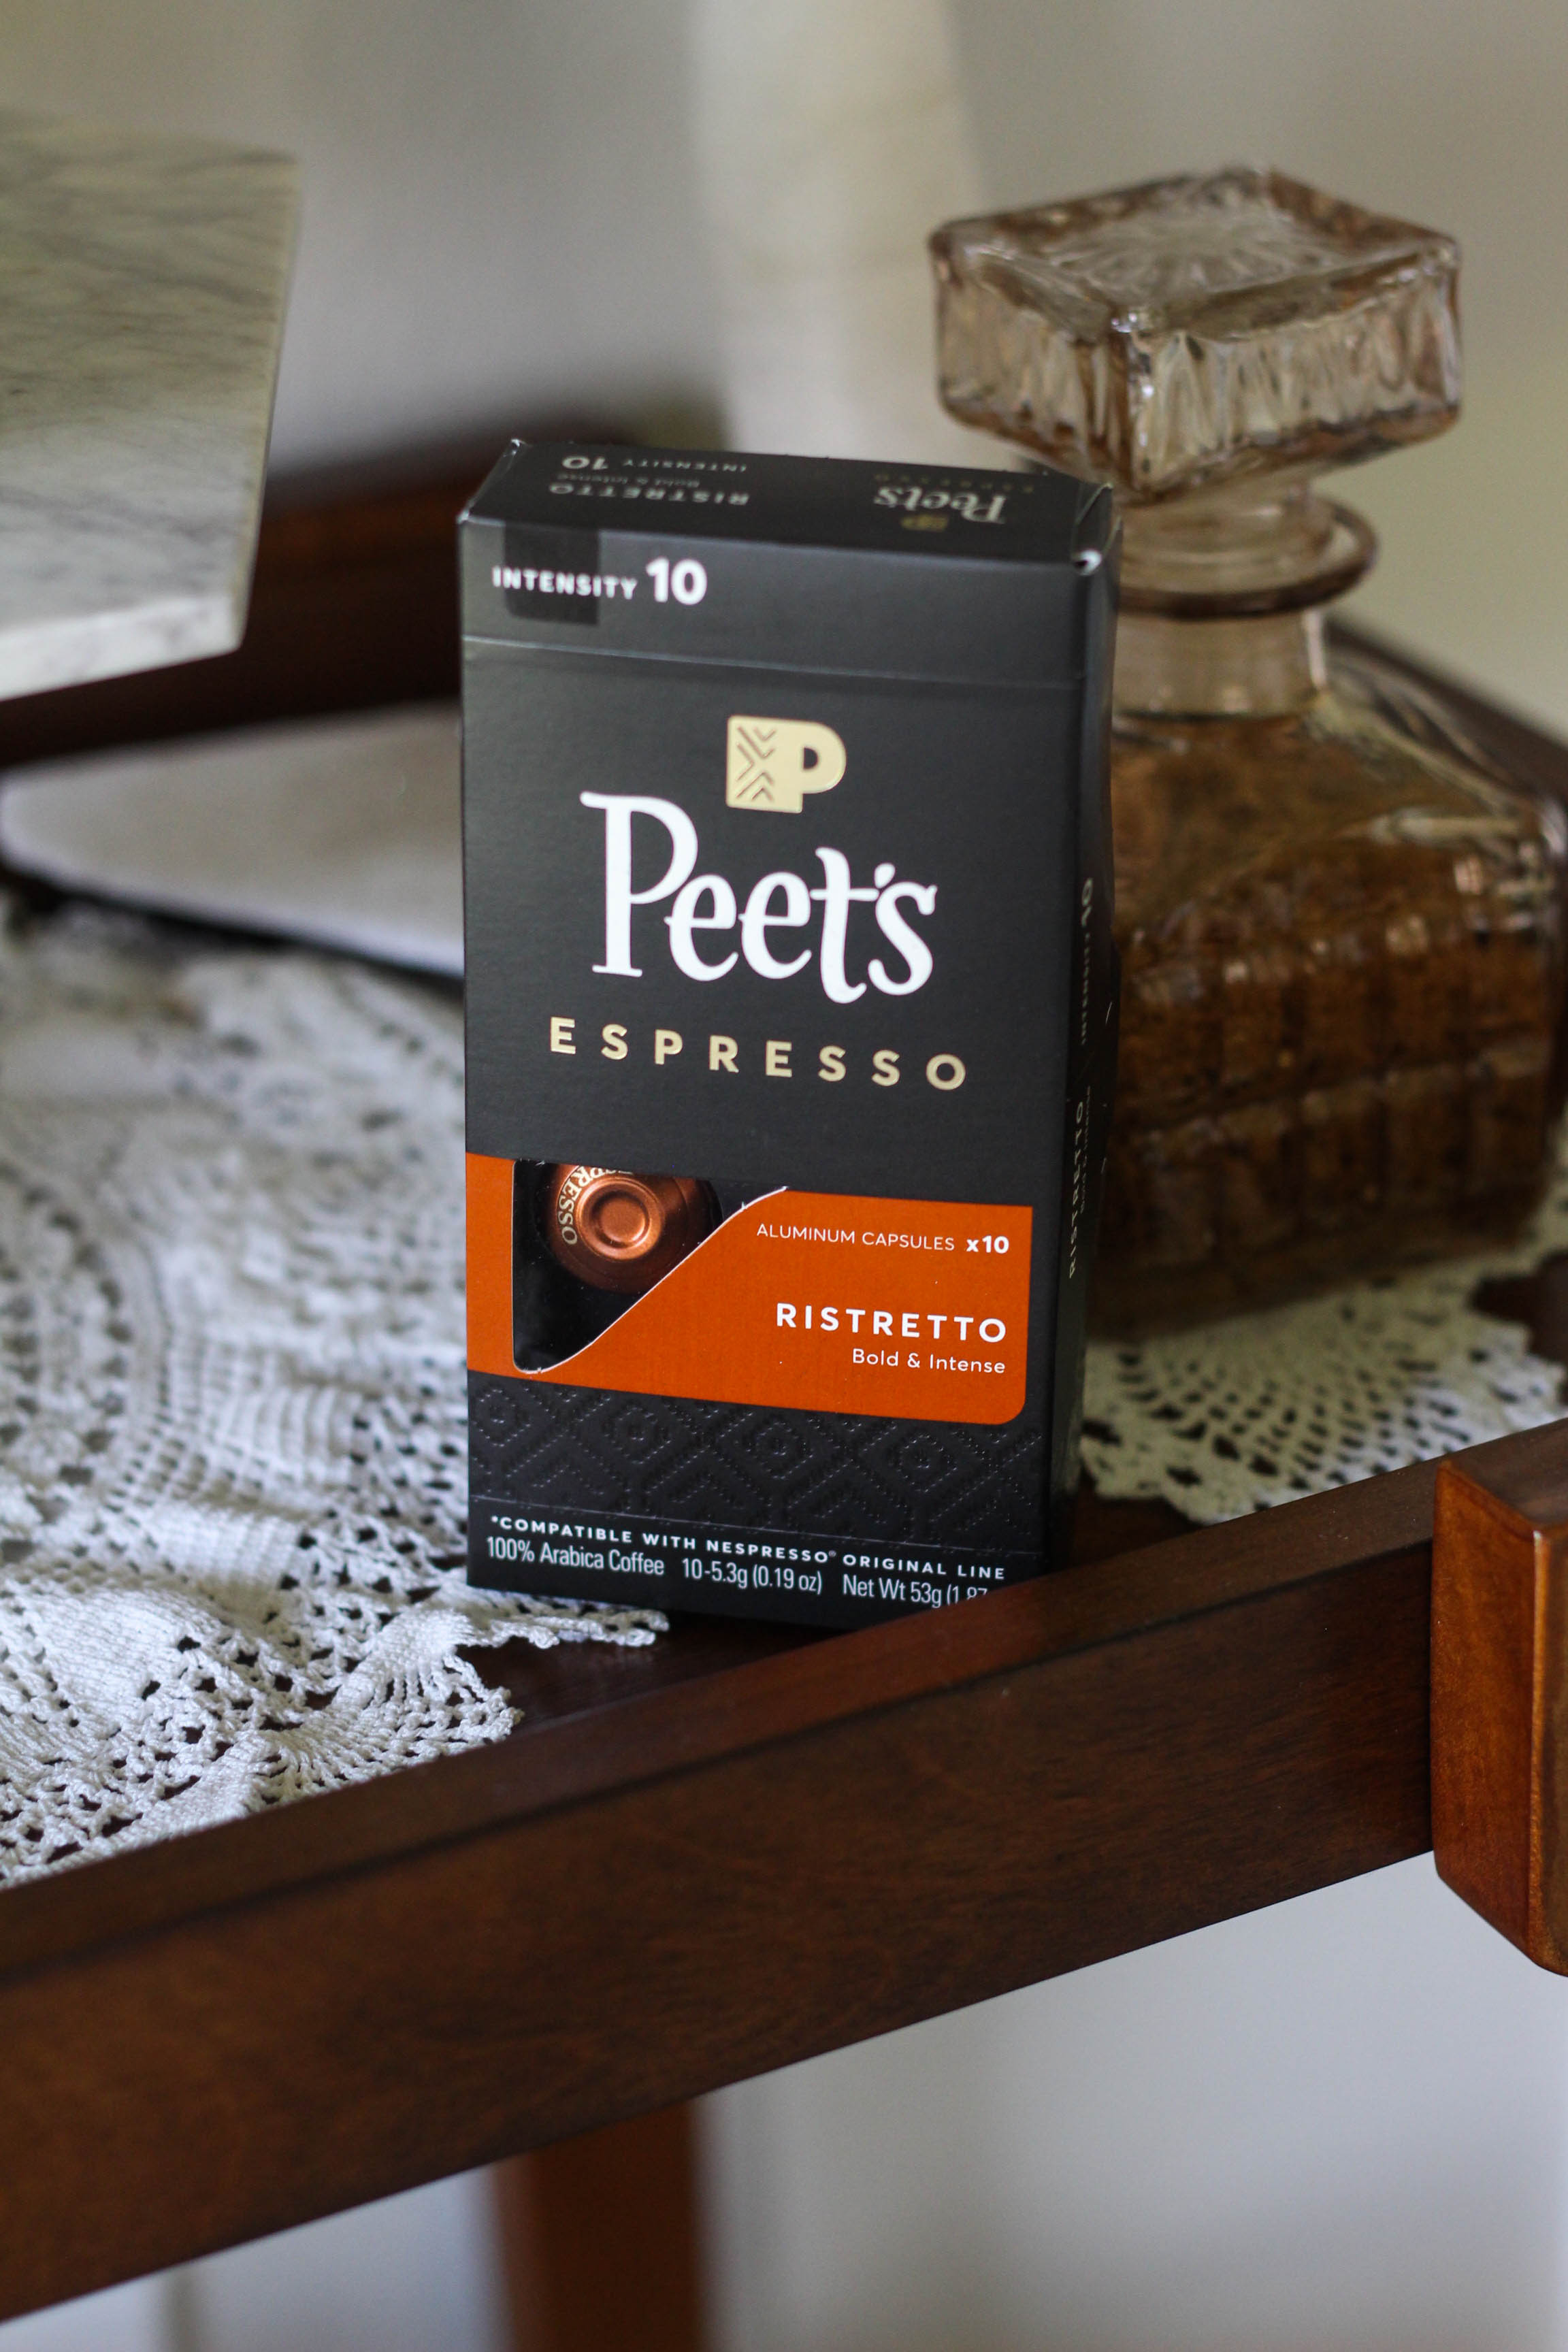 Peets Espresso Capsules for Nespresso Coffee Bar 1 - Caffeine Fix with Peet's Espresso